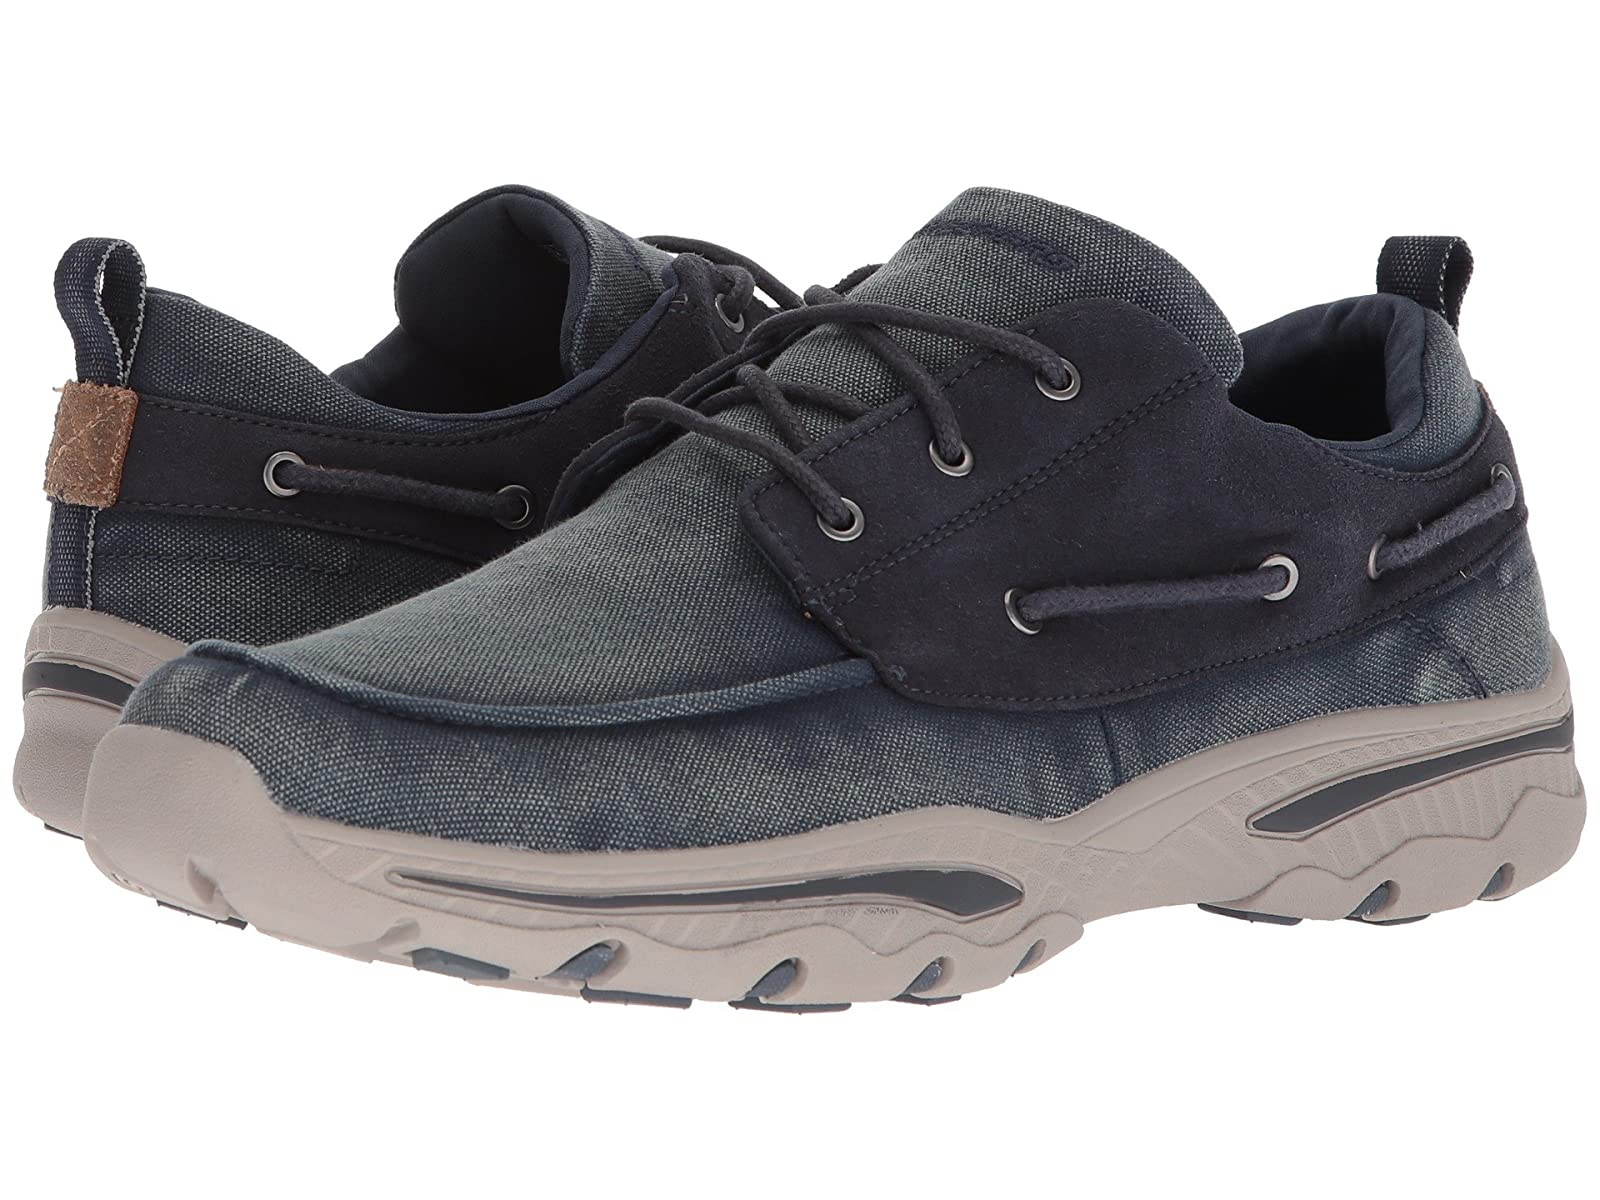 SKECHERS Relaxed Fit: Creston - VosenSelling fashionable and eye-catching shoes